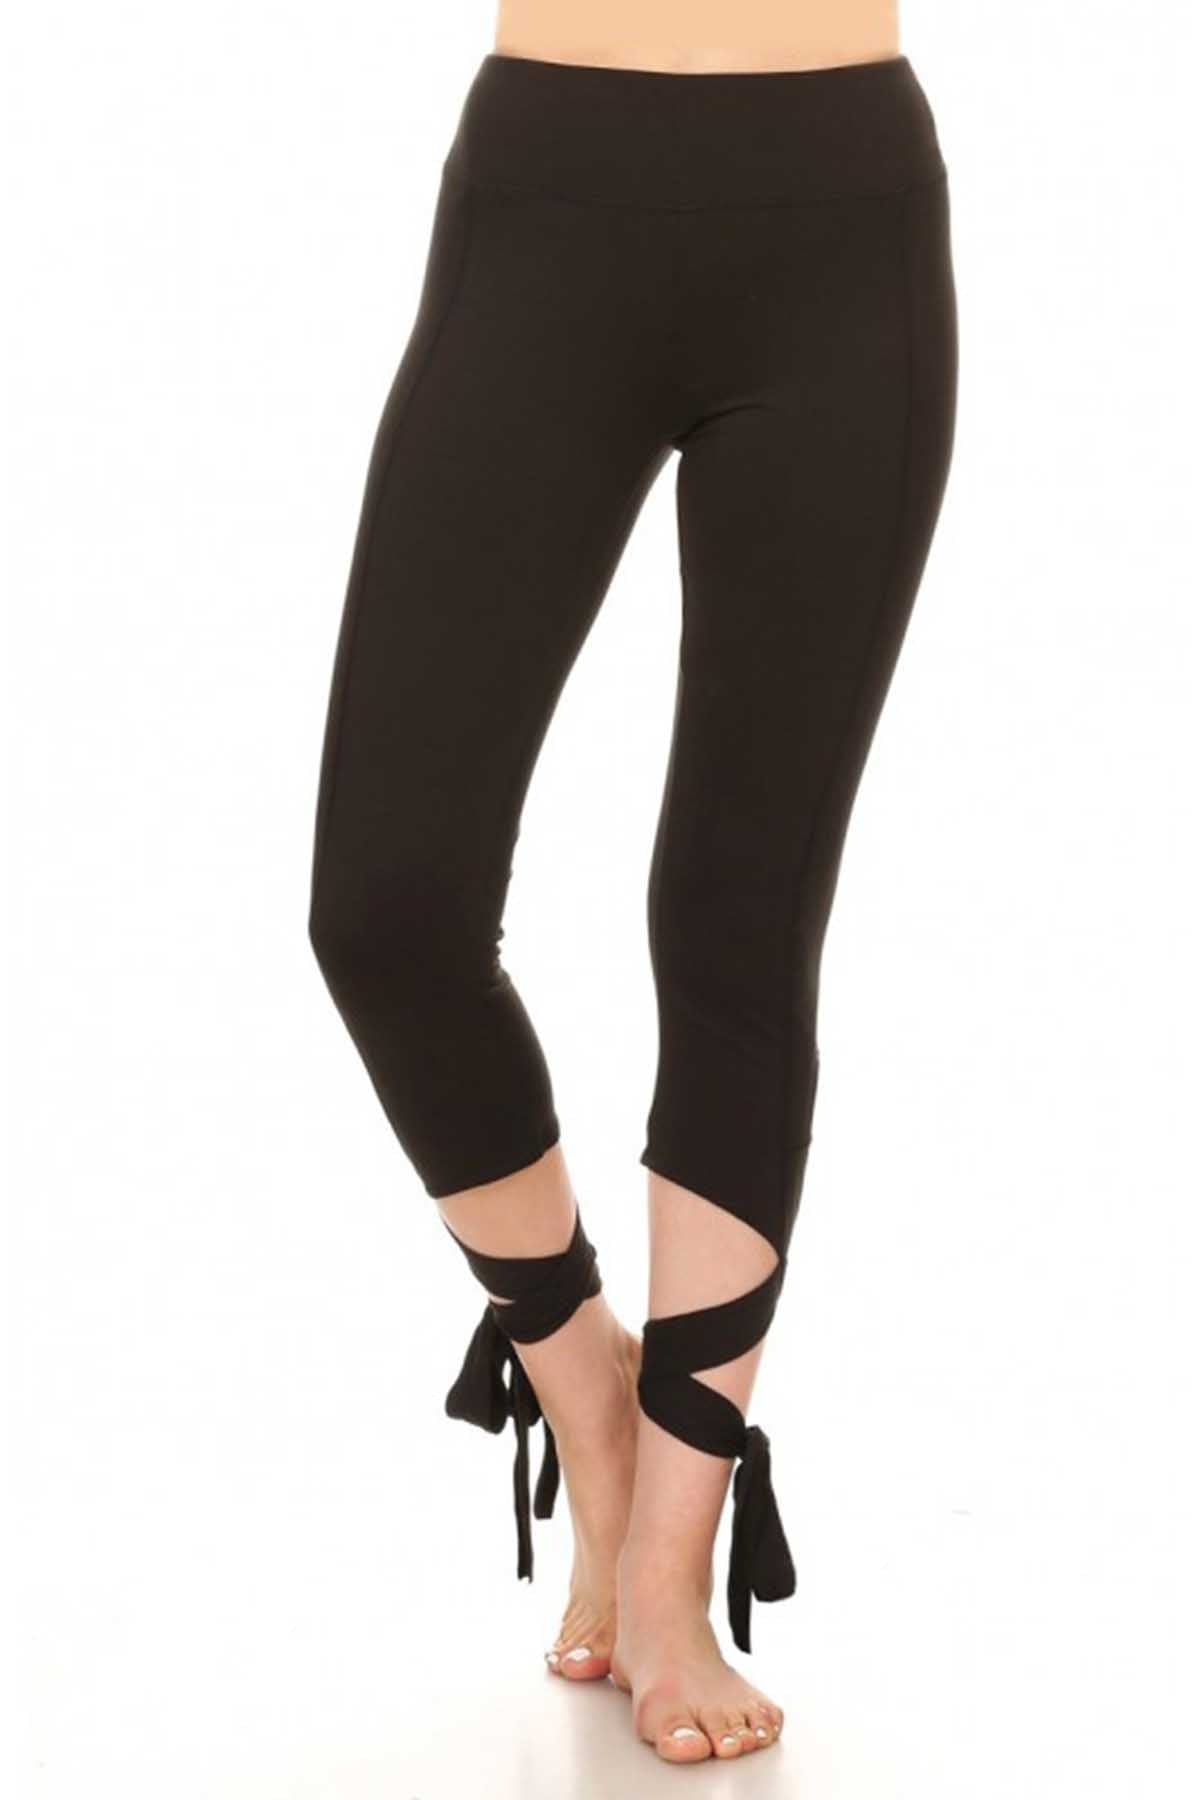 ShoSho Black Dance-Inspired Wrap-Around Capri Legging